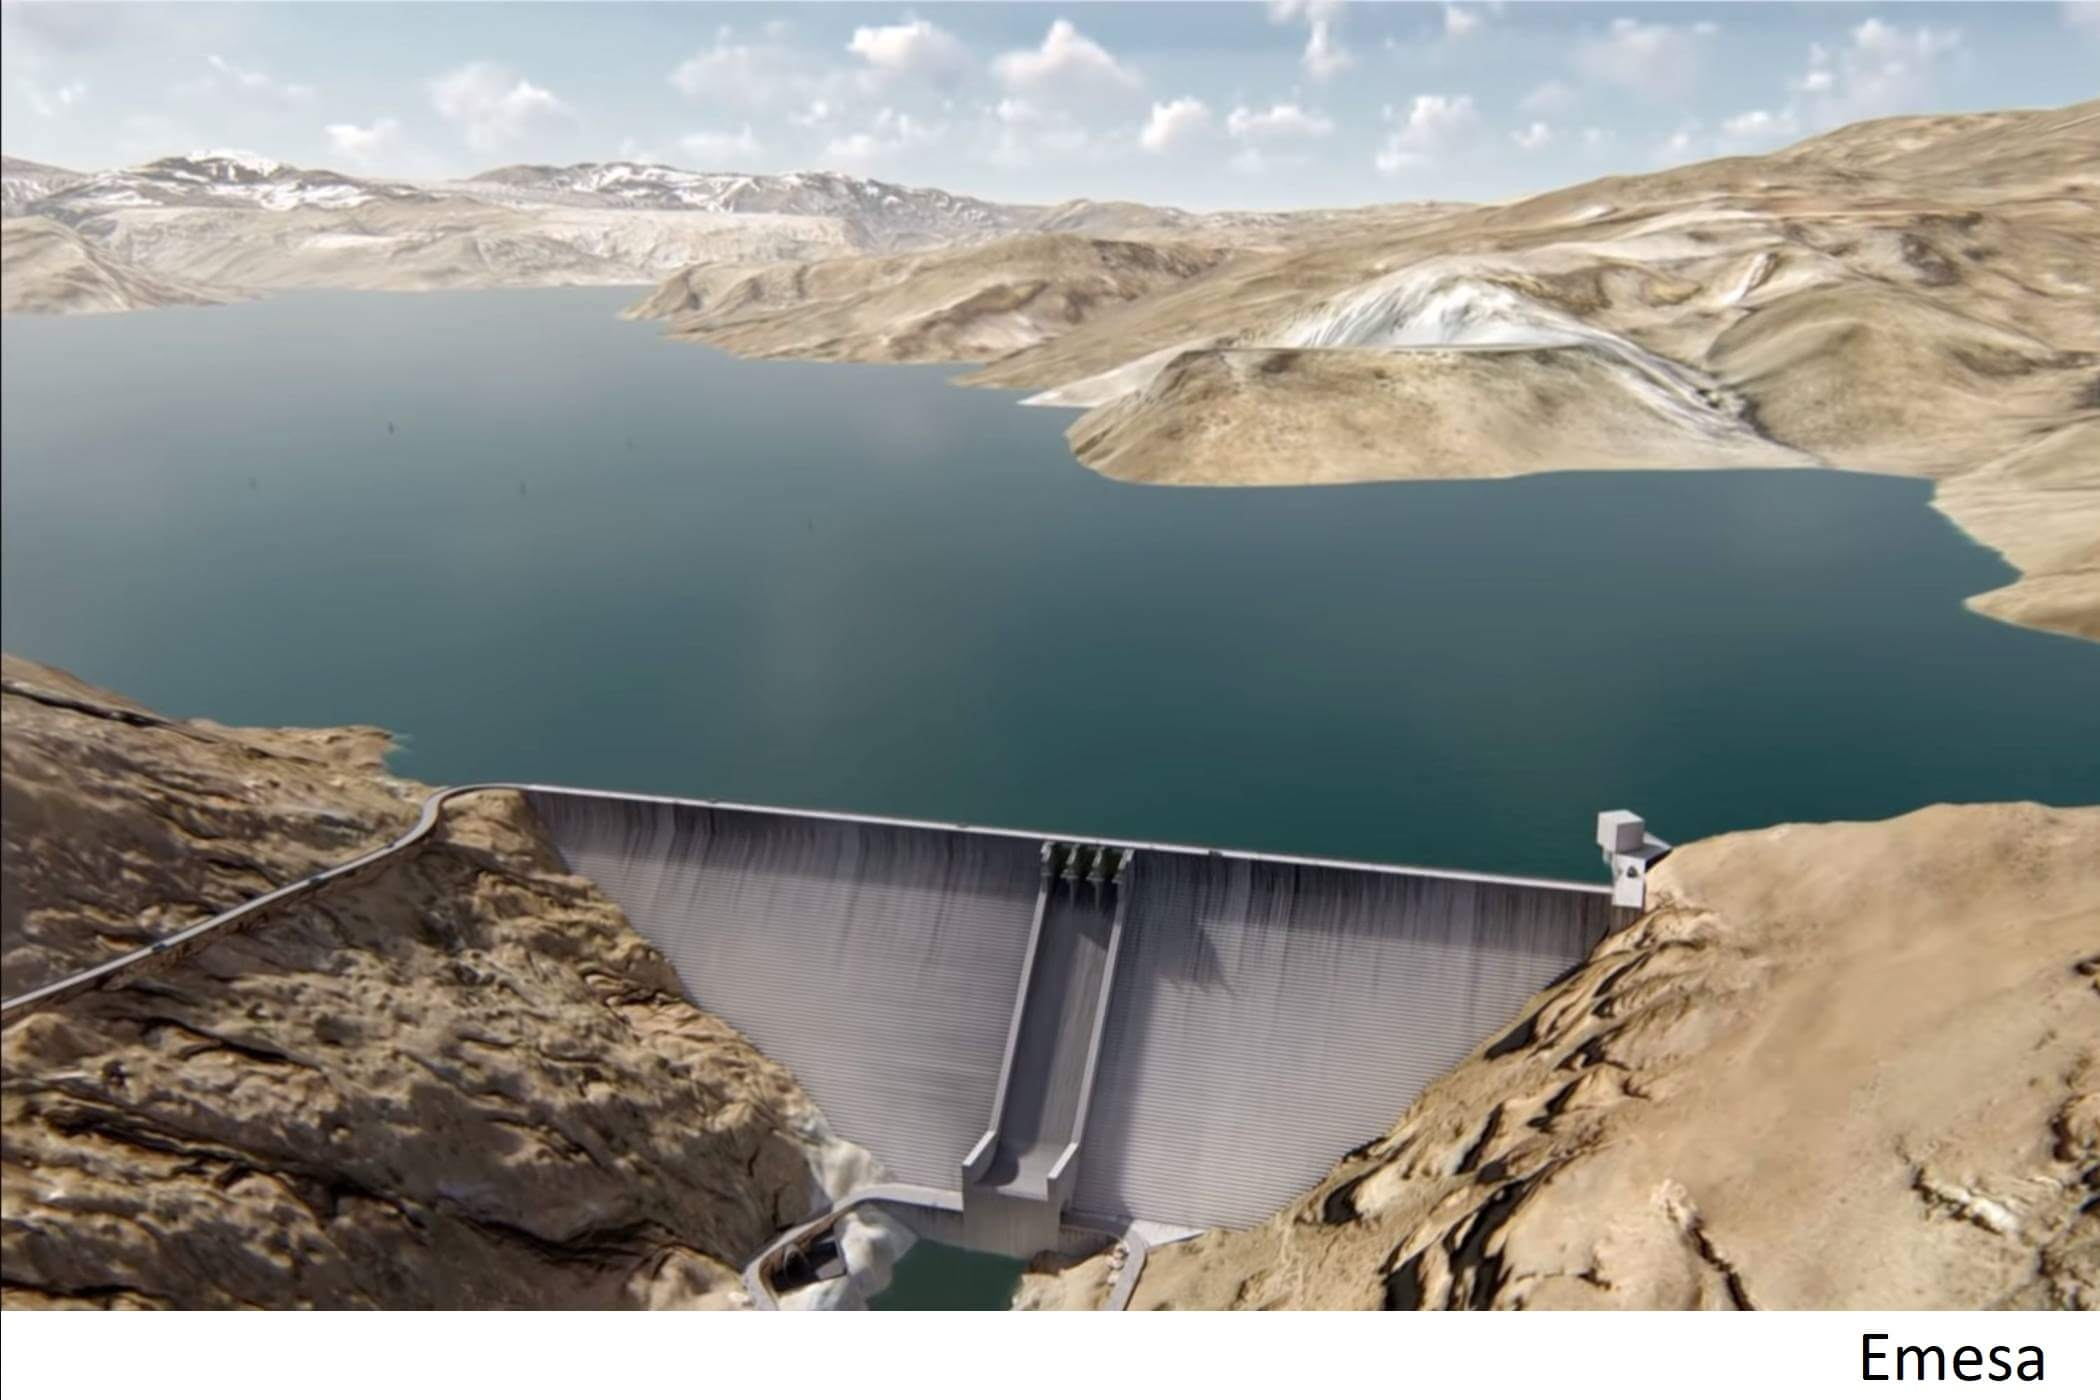 Cost of Portezuelo del Viento dam set to be 42% higher than expected